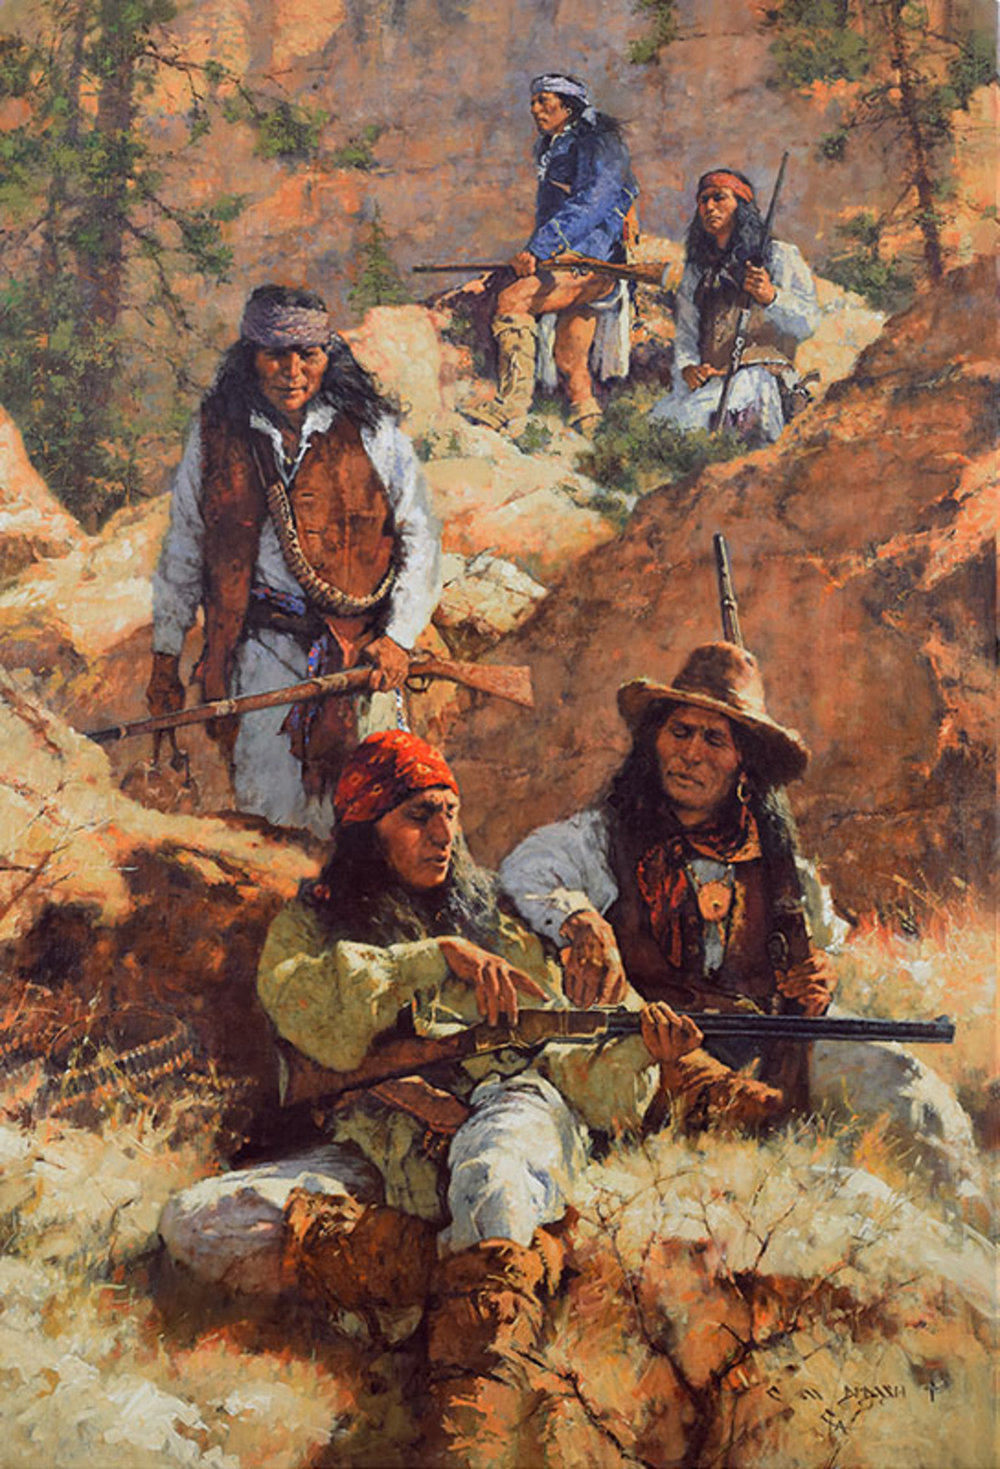 """*****SOLD*****  """"A BAND OF BROTHERS, A BROTHERS NEW HENRY"""" Oil on LInen 56"""" x 38"""" Sold at Cowboy Artists Of America - Cowboy Crossings 2017"""